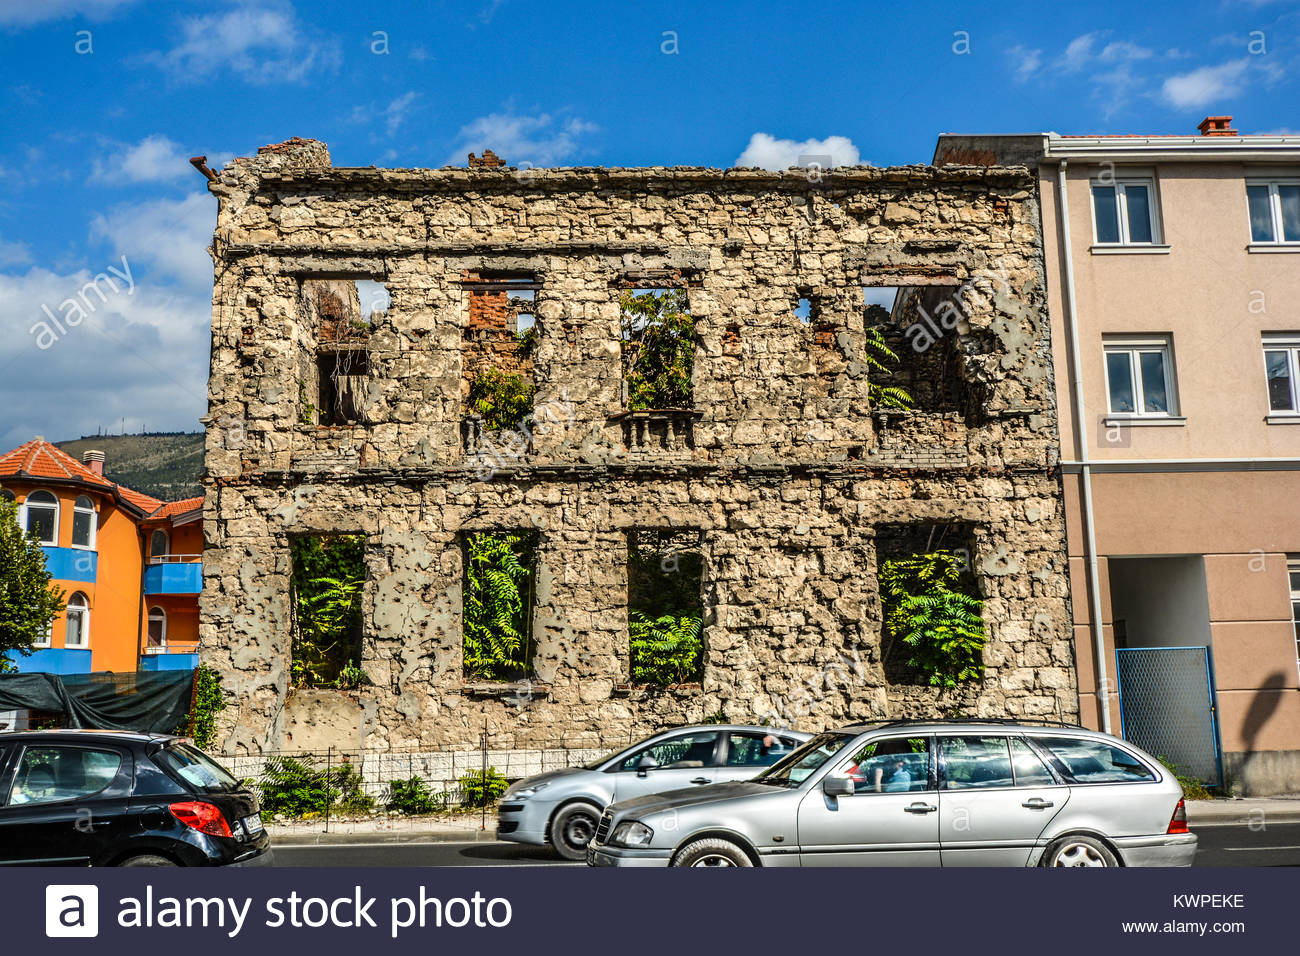 A building lies abandoned after being destroyed in the Balkans war in the town of Mostar, Bosnia and Herzegovina - Stock Image